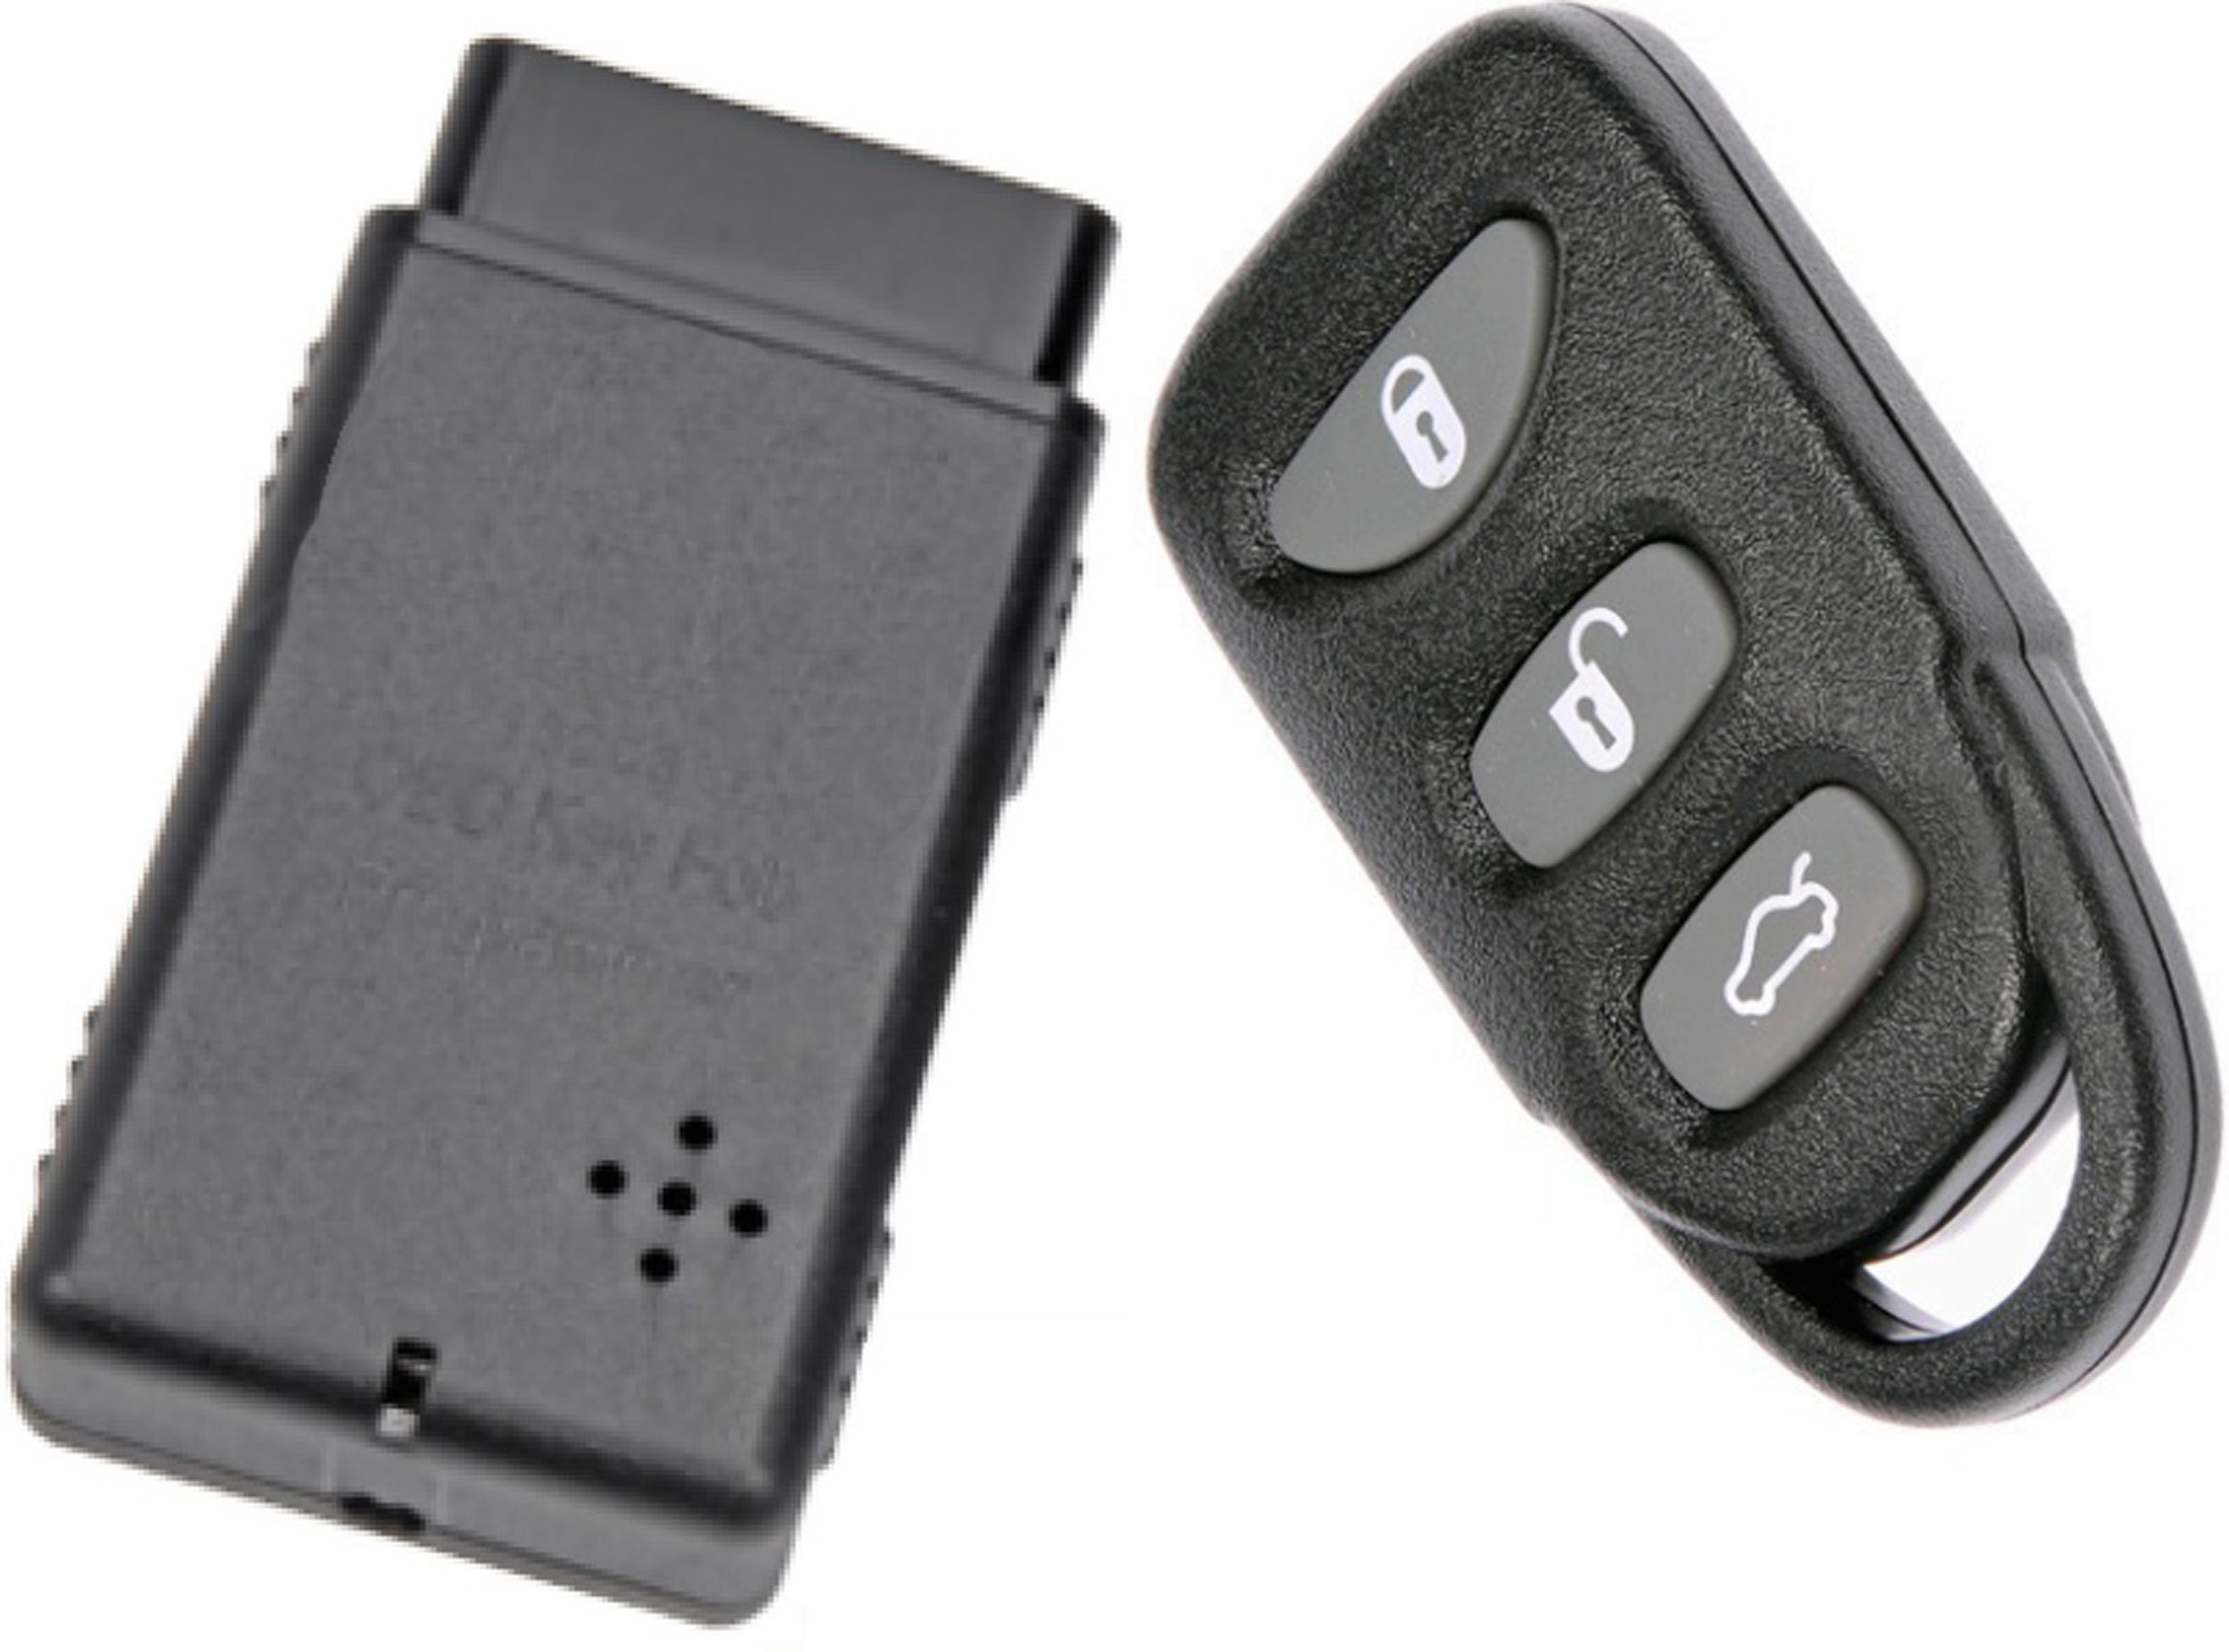 APDTY 133775 Replacement Keyless Entry Remote Key Fob With Auto Programmer Fits 2006-2014 Hyundai Sonata 2007-2015 Hyundai Elantra (Replaces 954303K202, 954303Q000, 954303Q001, 954303X500) by APDTY